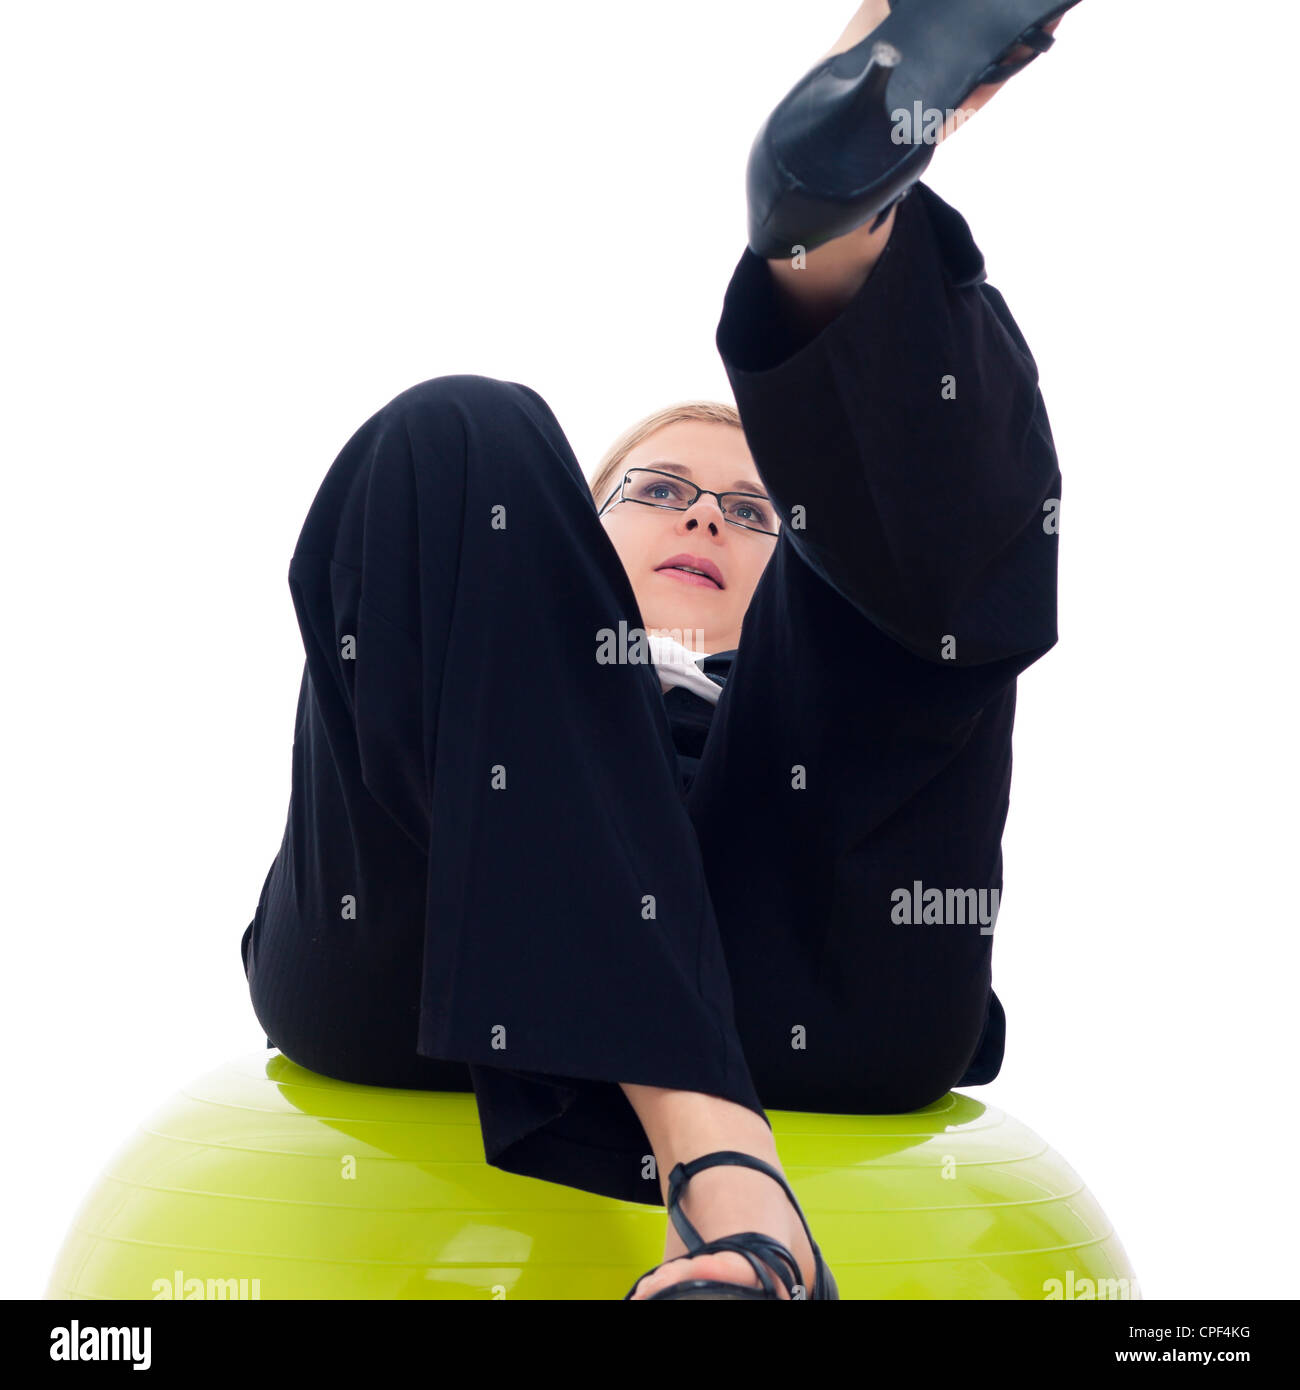 Businesswoman falling down from green exercise ball, isolated on white background. - Stock Image